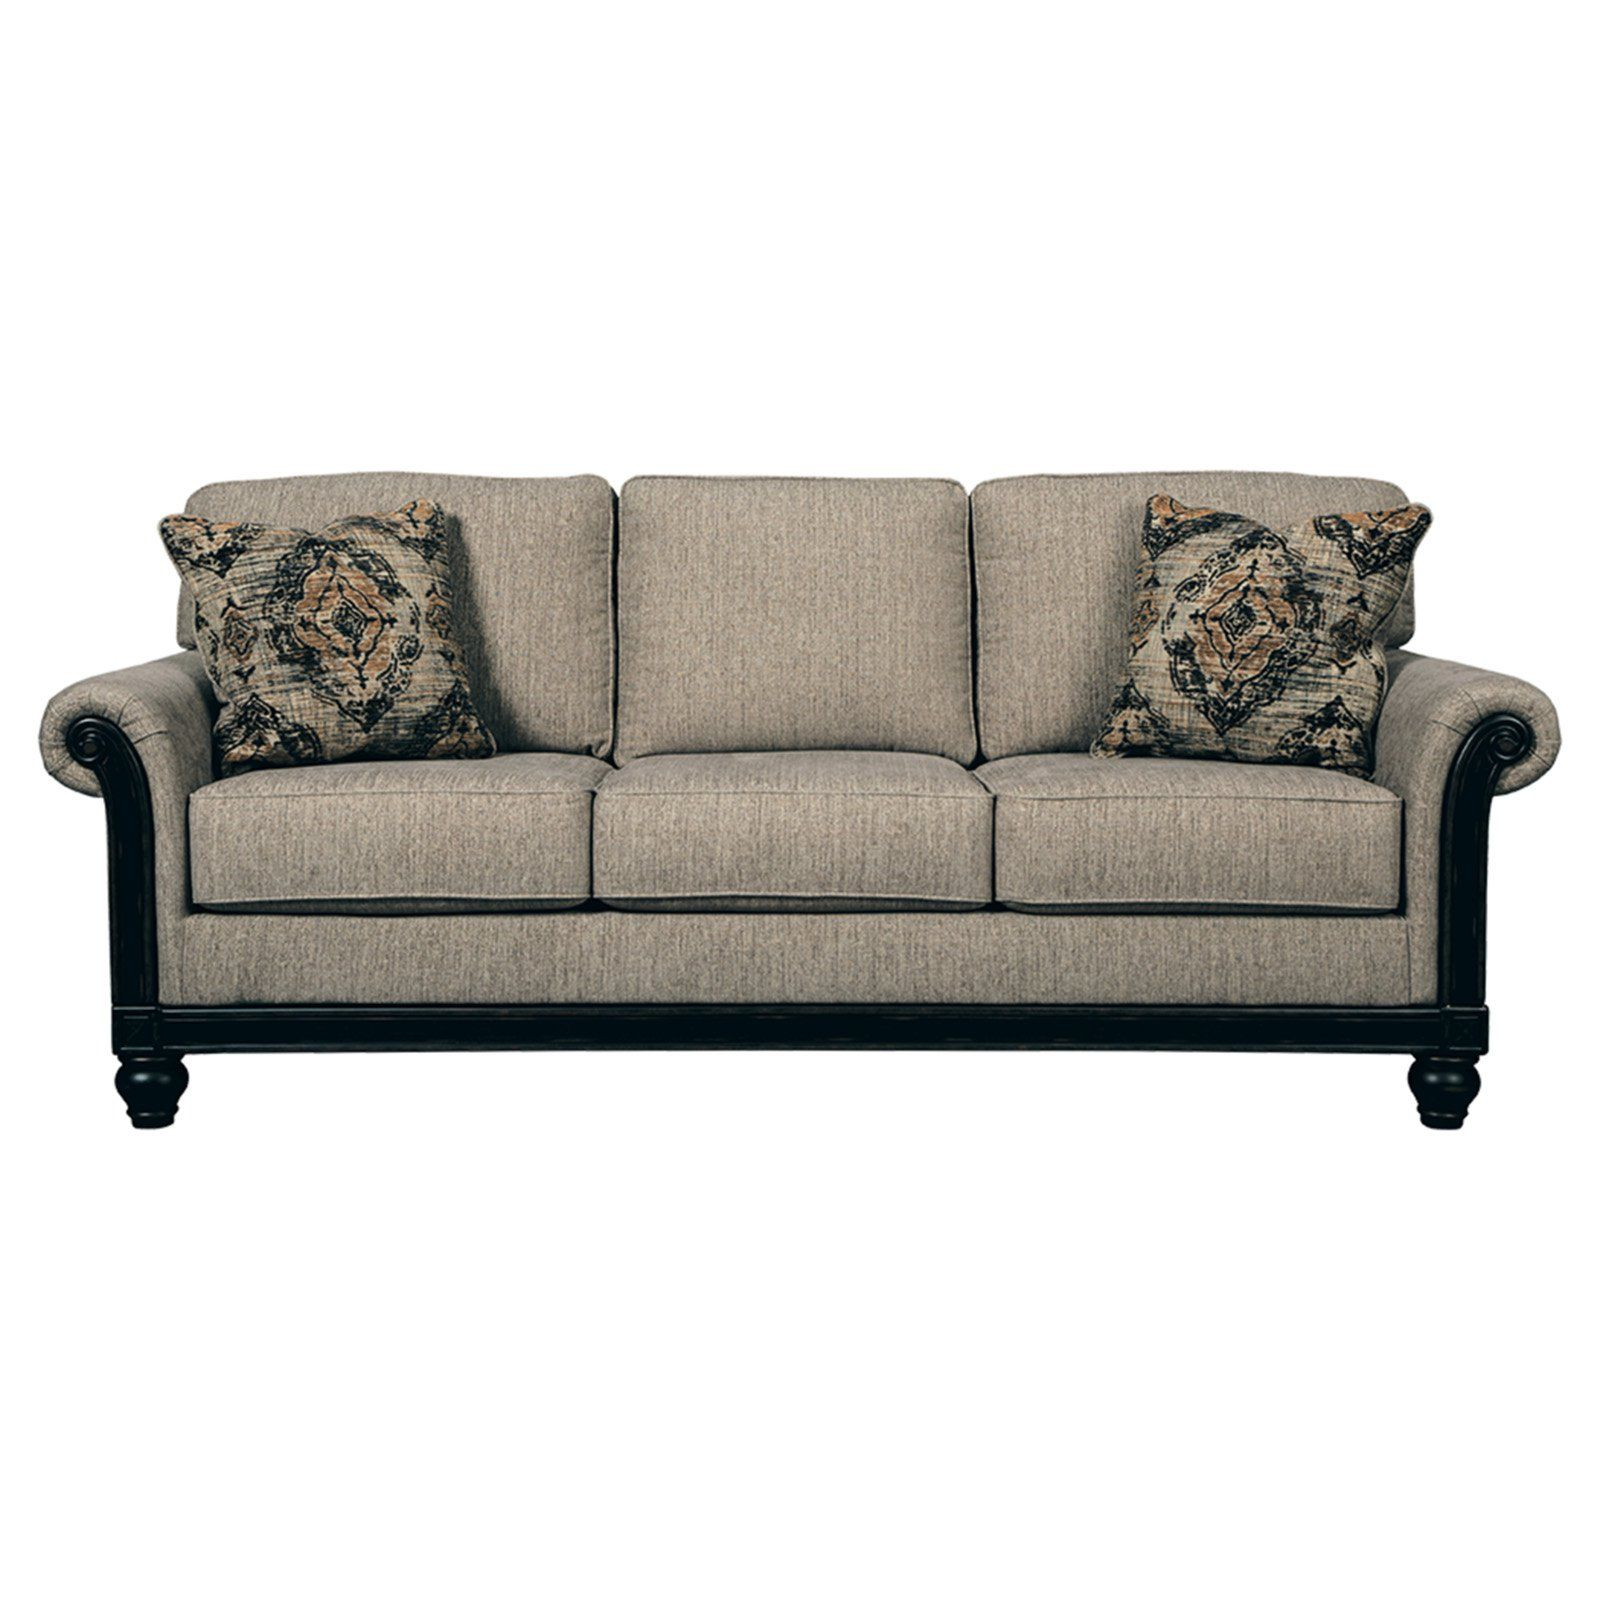 Incredible Signature Design By Ashley Gilmer Sofa Products Ashley Pdpeps Interior Chair Design Pdpepsorg